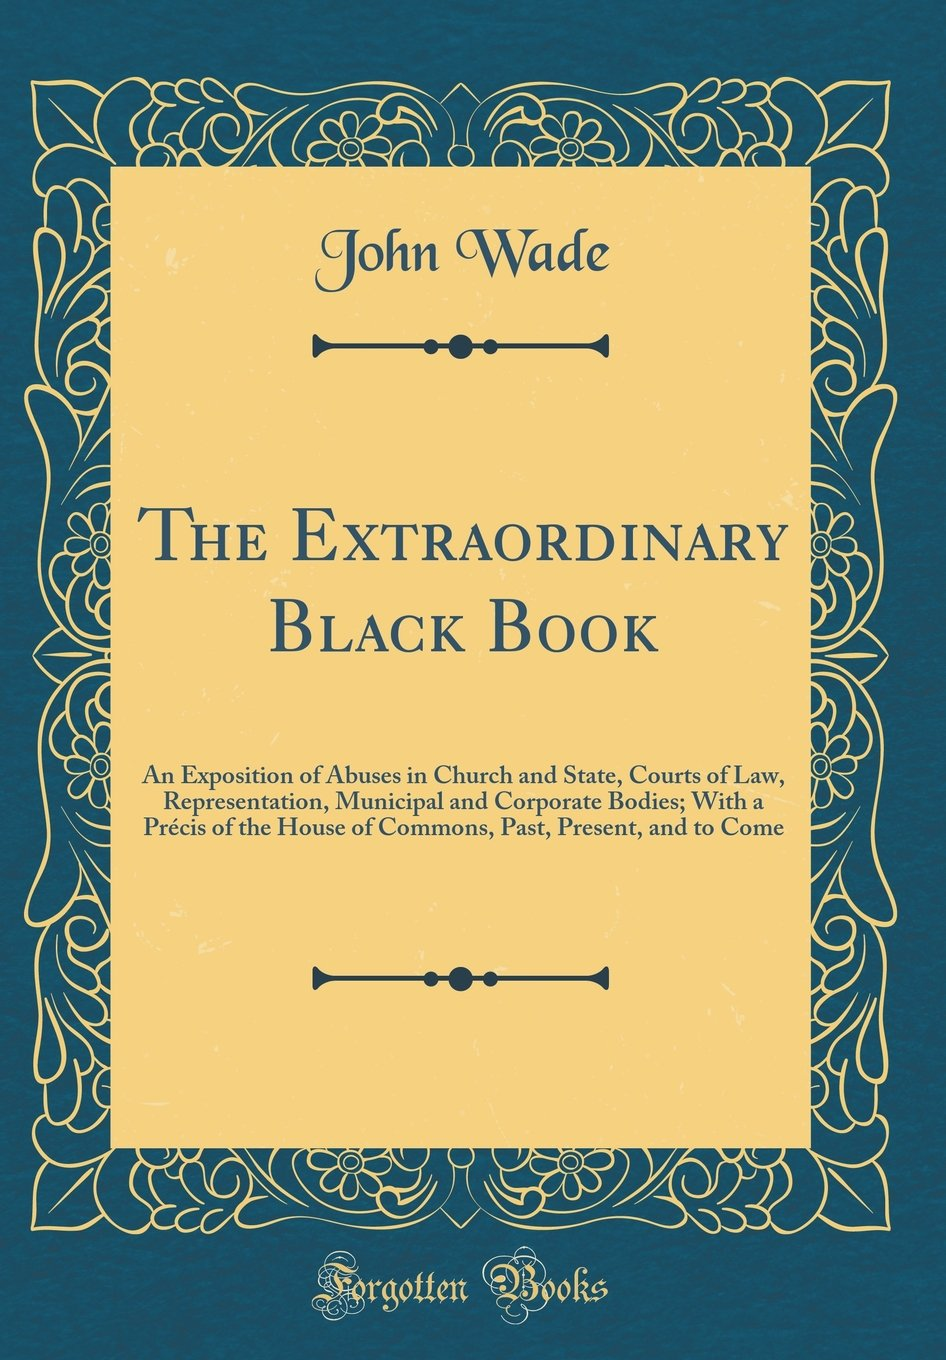 The Extraordinary Black Book: An Exposition of Abuses in Church and State, Courts of Law, Representation, Municipal and Corporate Bodies; With a ... Past, Present, and to Come (Classic Reprint) ebook